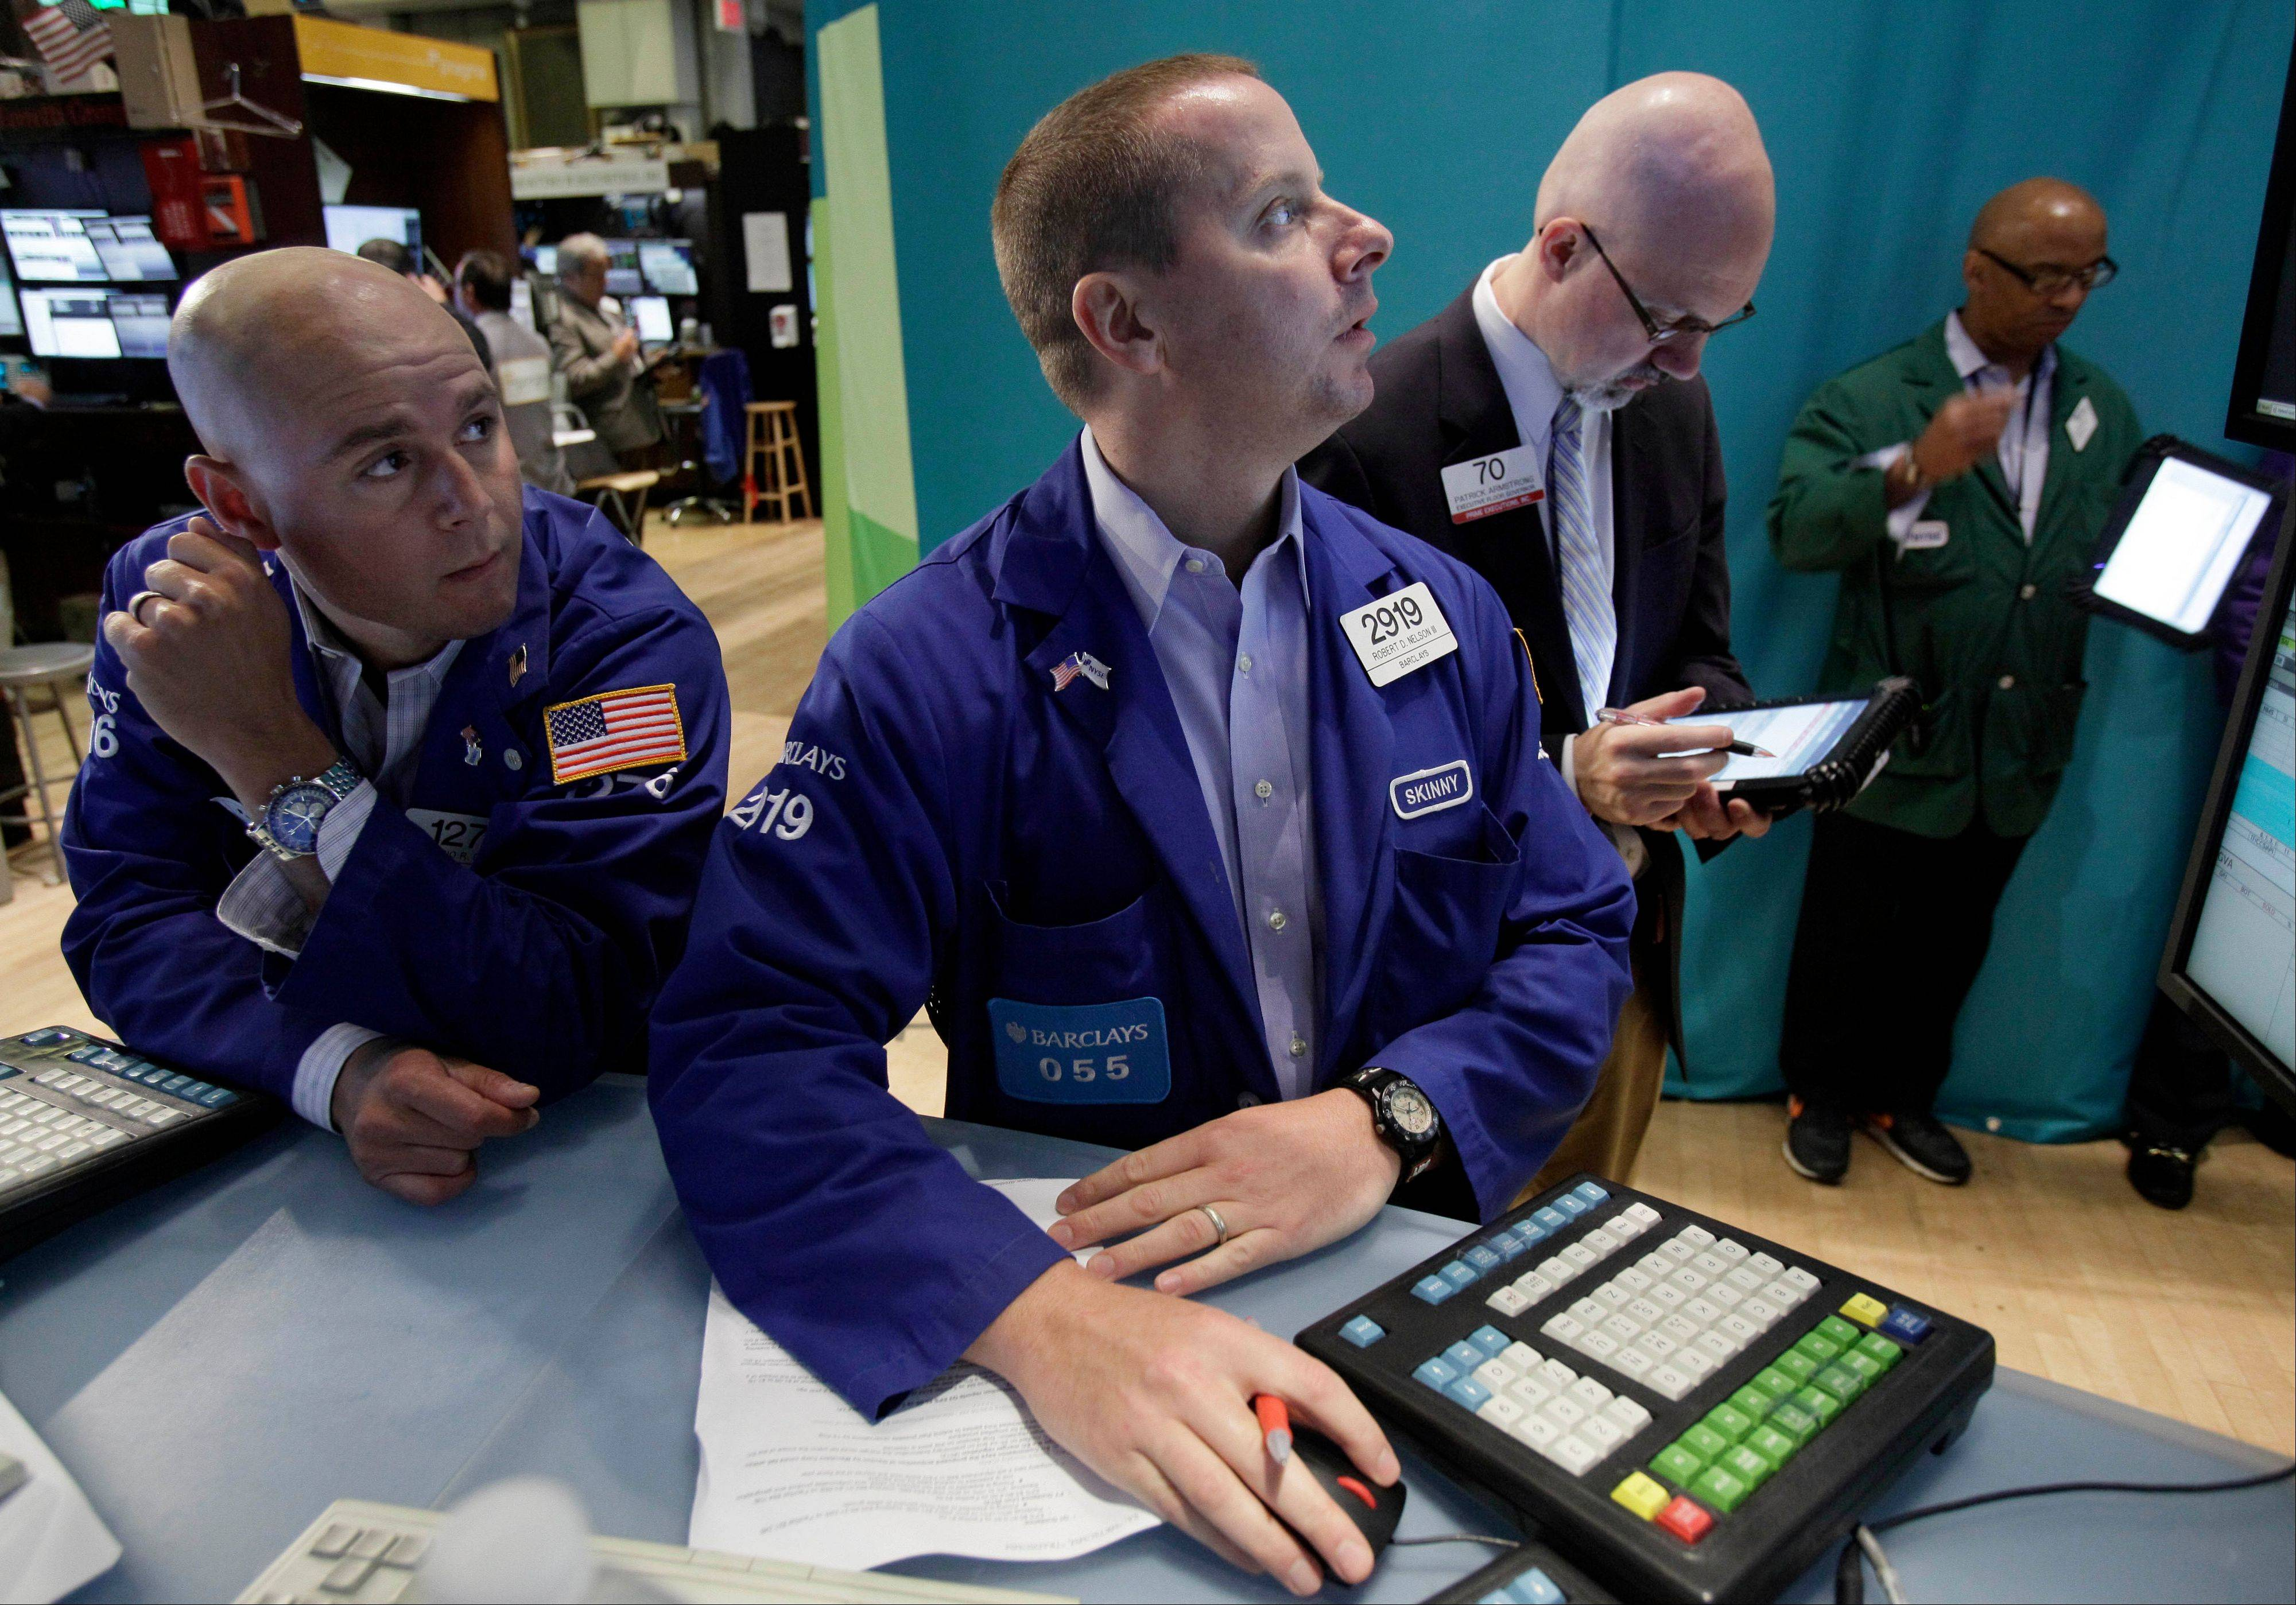 Specialists Mario Picone, left, and Robert Nelson, center, work Friday at their posts on the floor of the New York Stock Exchange. U.S. stocks are rising sharply on Wall Street after a July jobs report revealed the strongest hiring trends in five months.